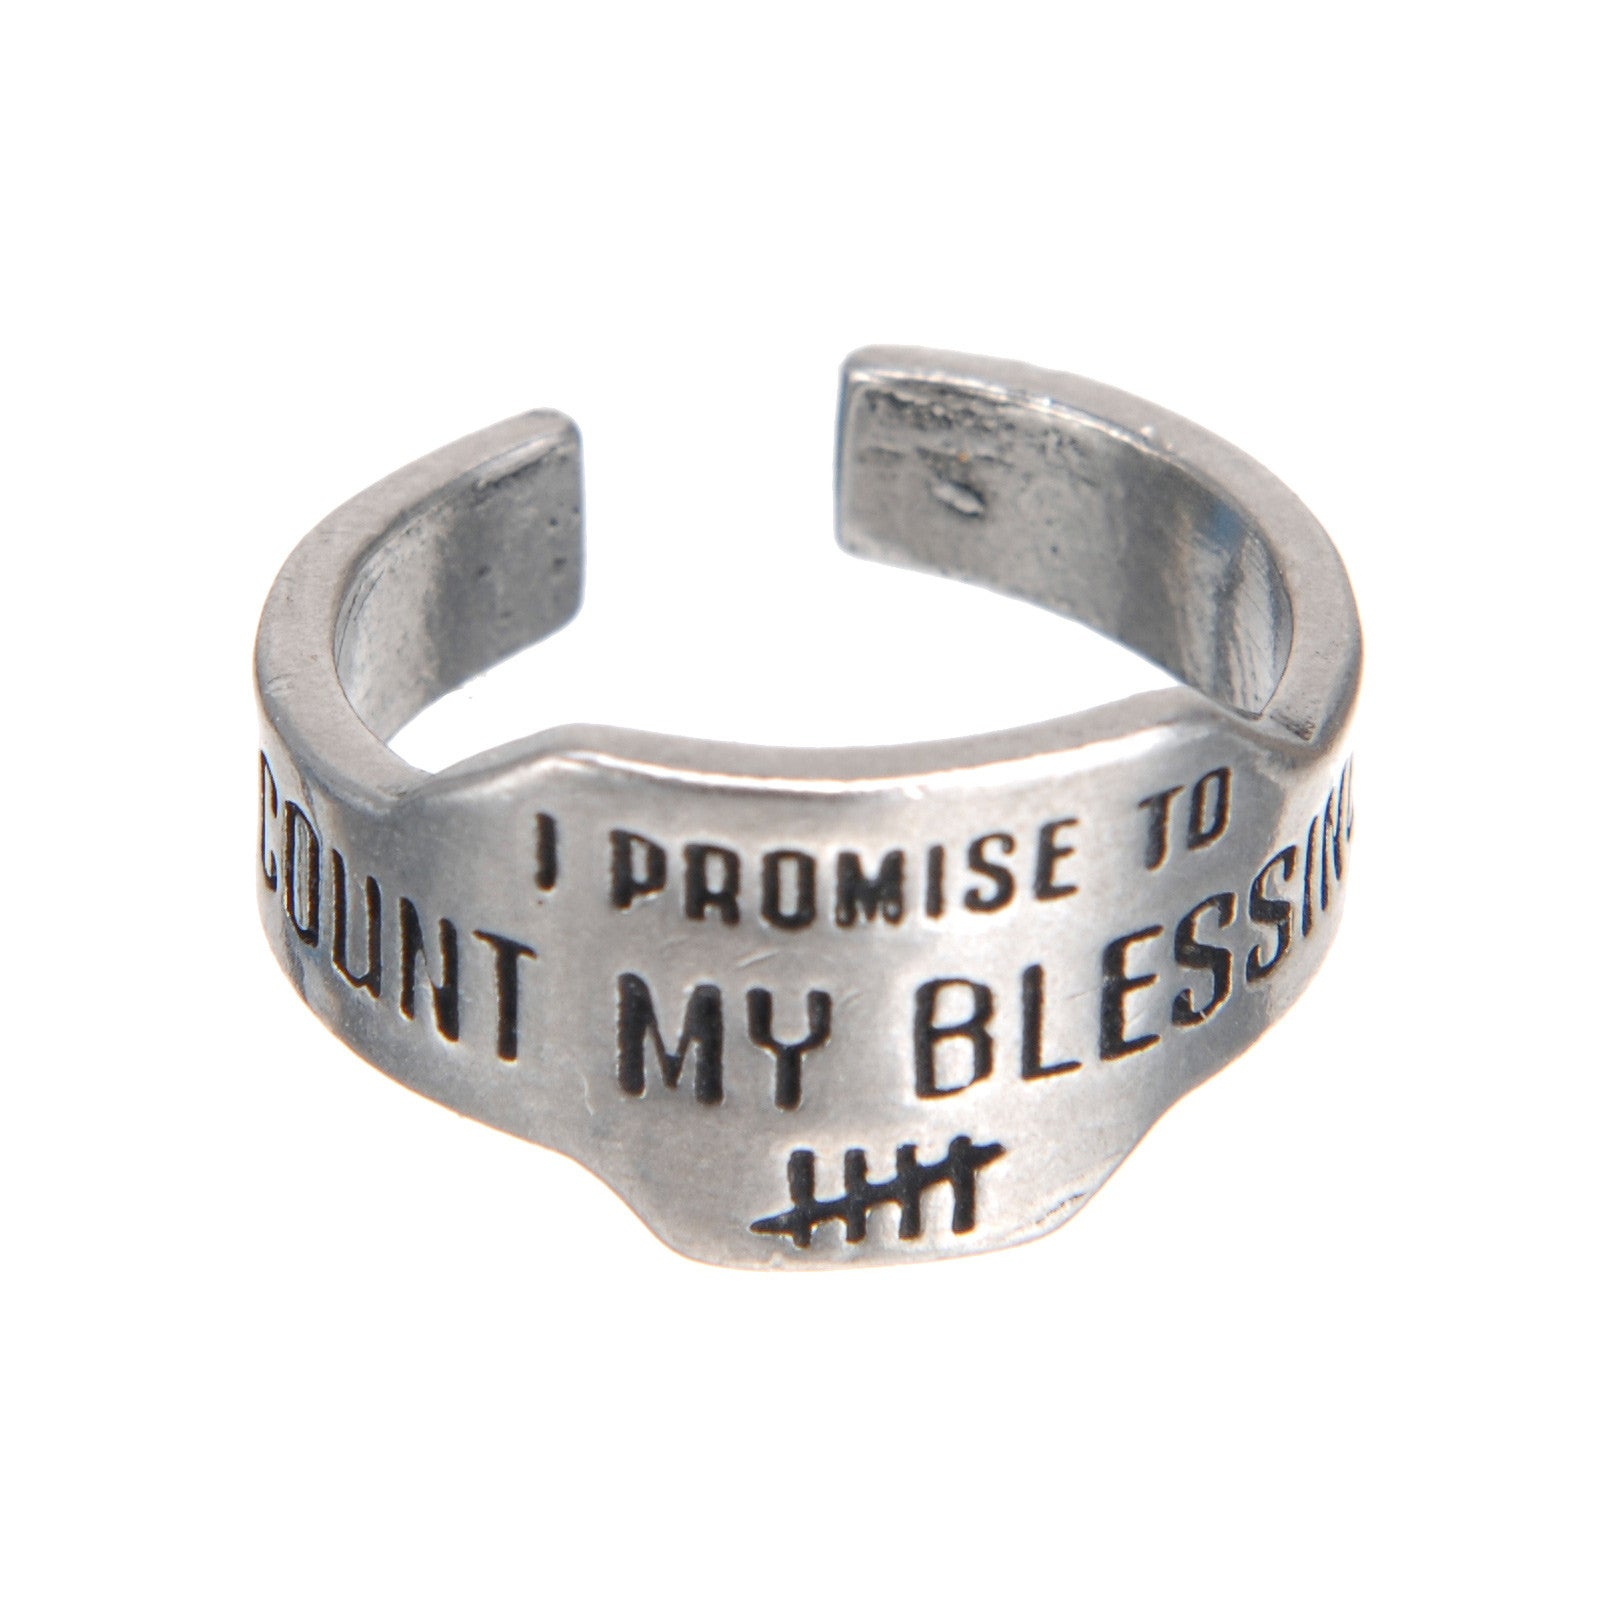 Count My Blessings Promise Ring - Whitney Howard Designs